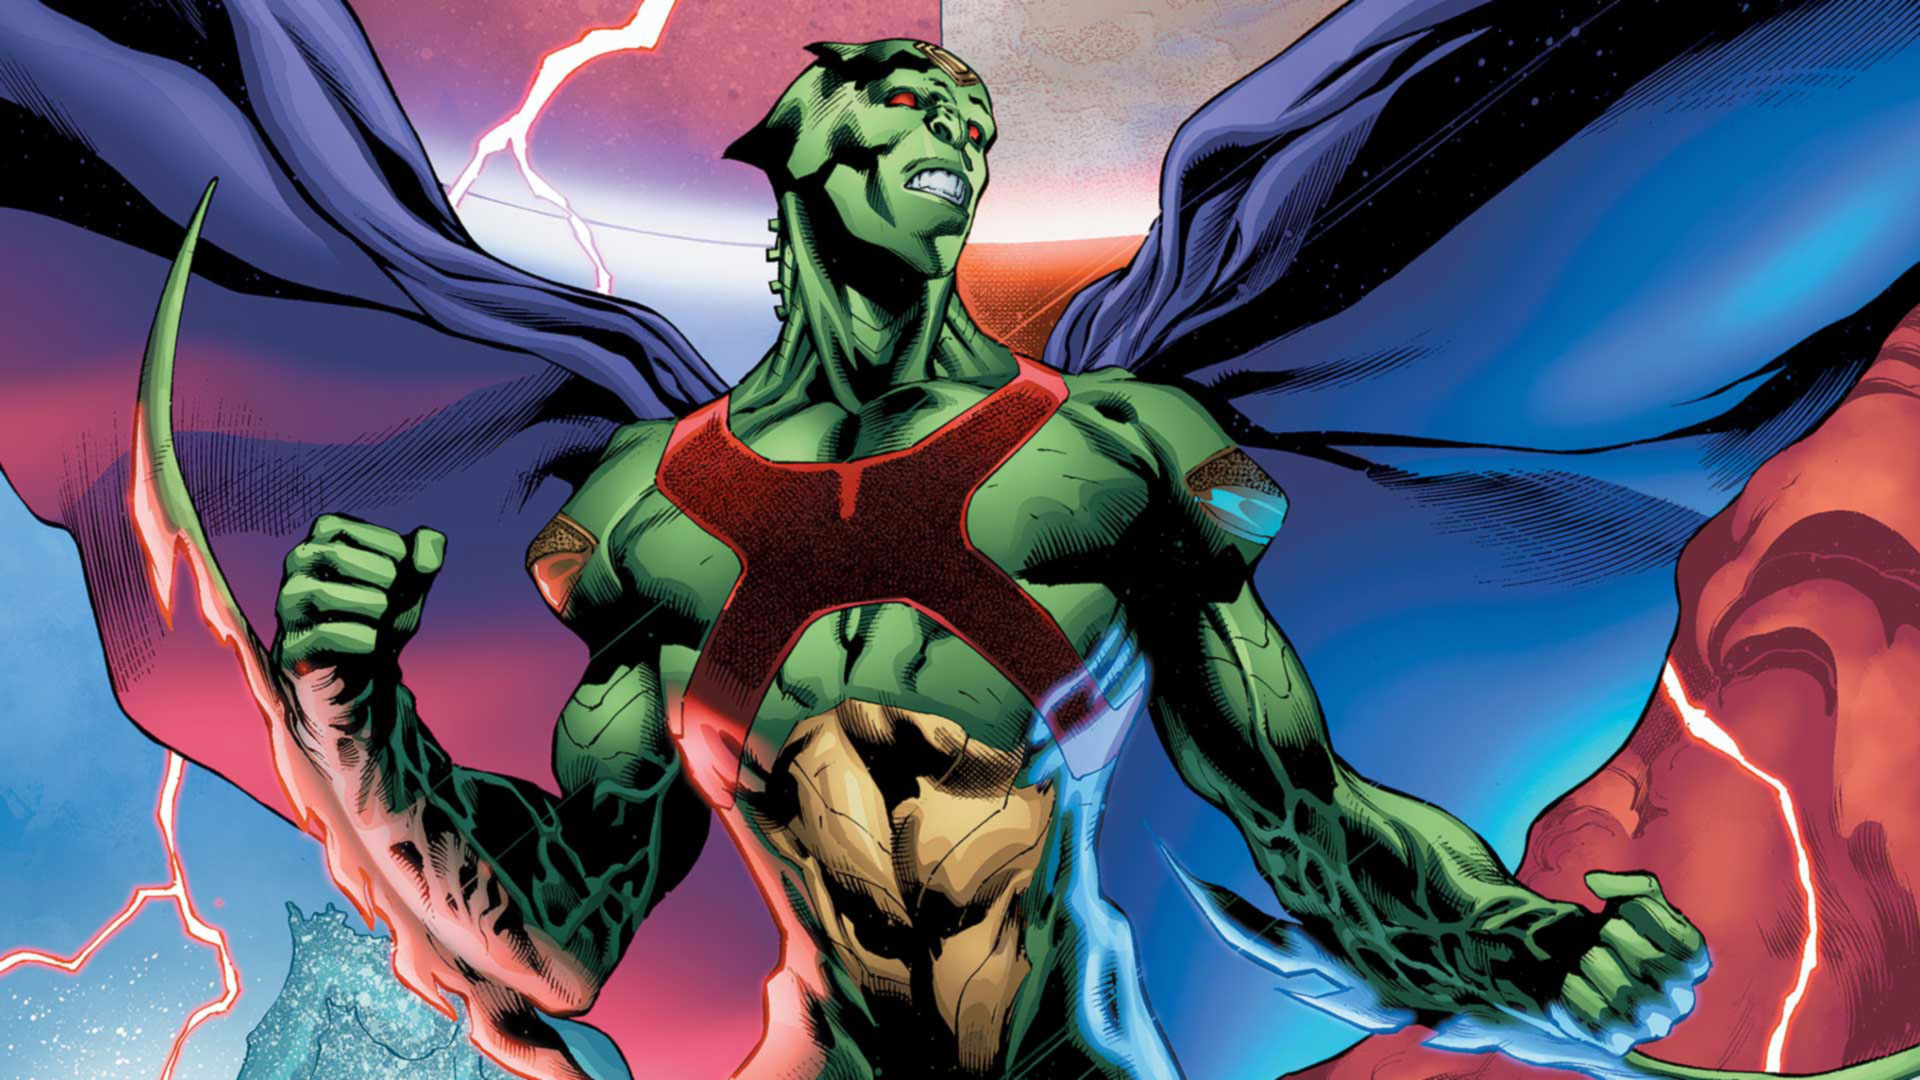 Top 20 Most Powerful Overpowered DC Characters 18 Martian Manhunter